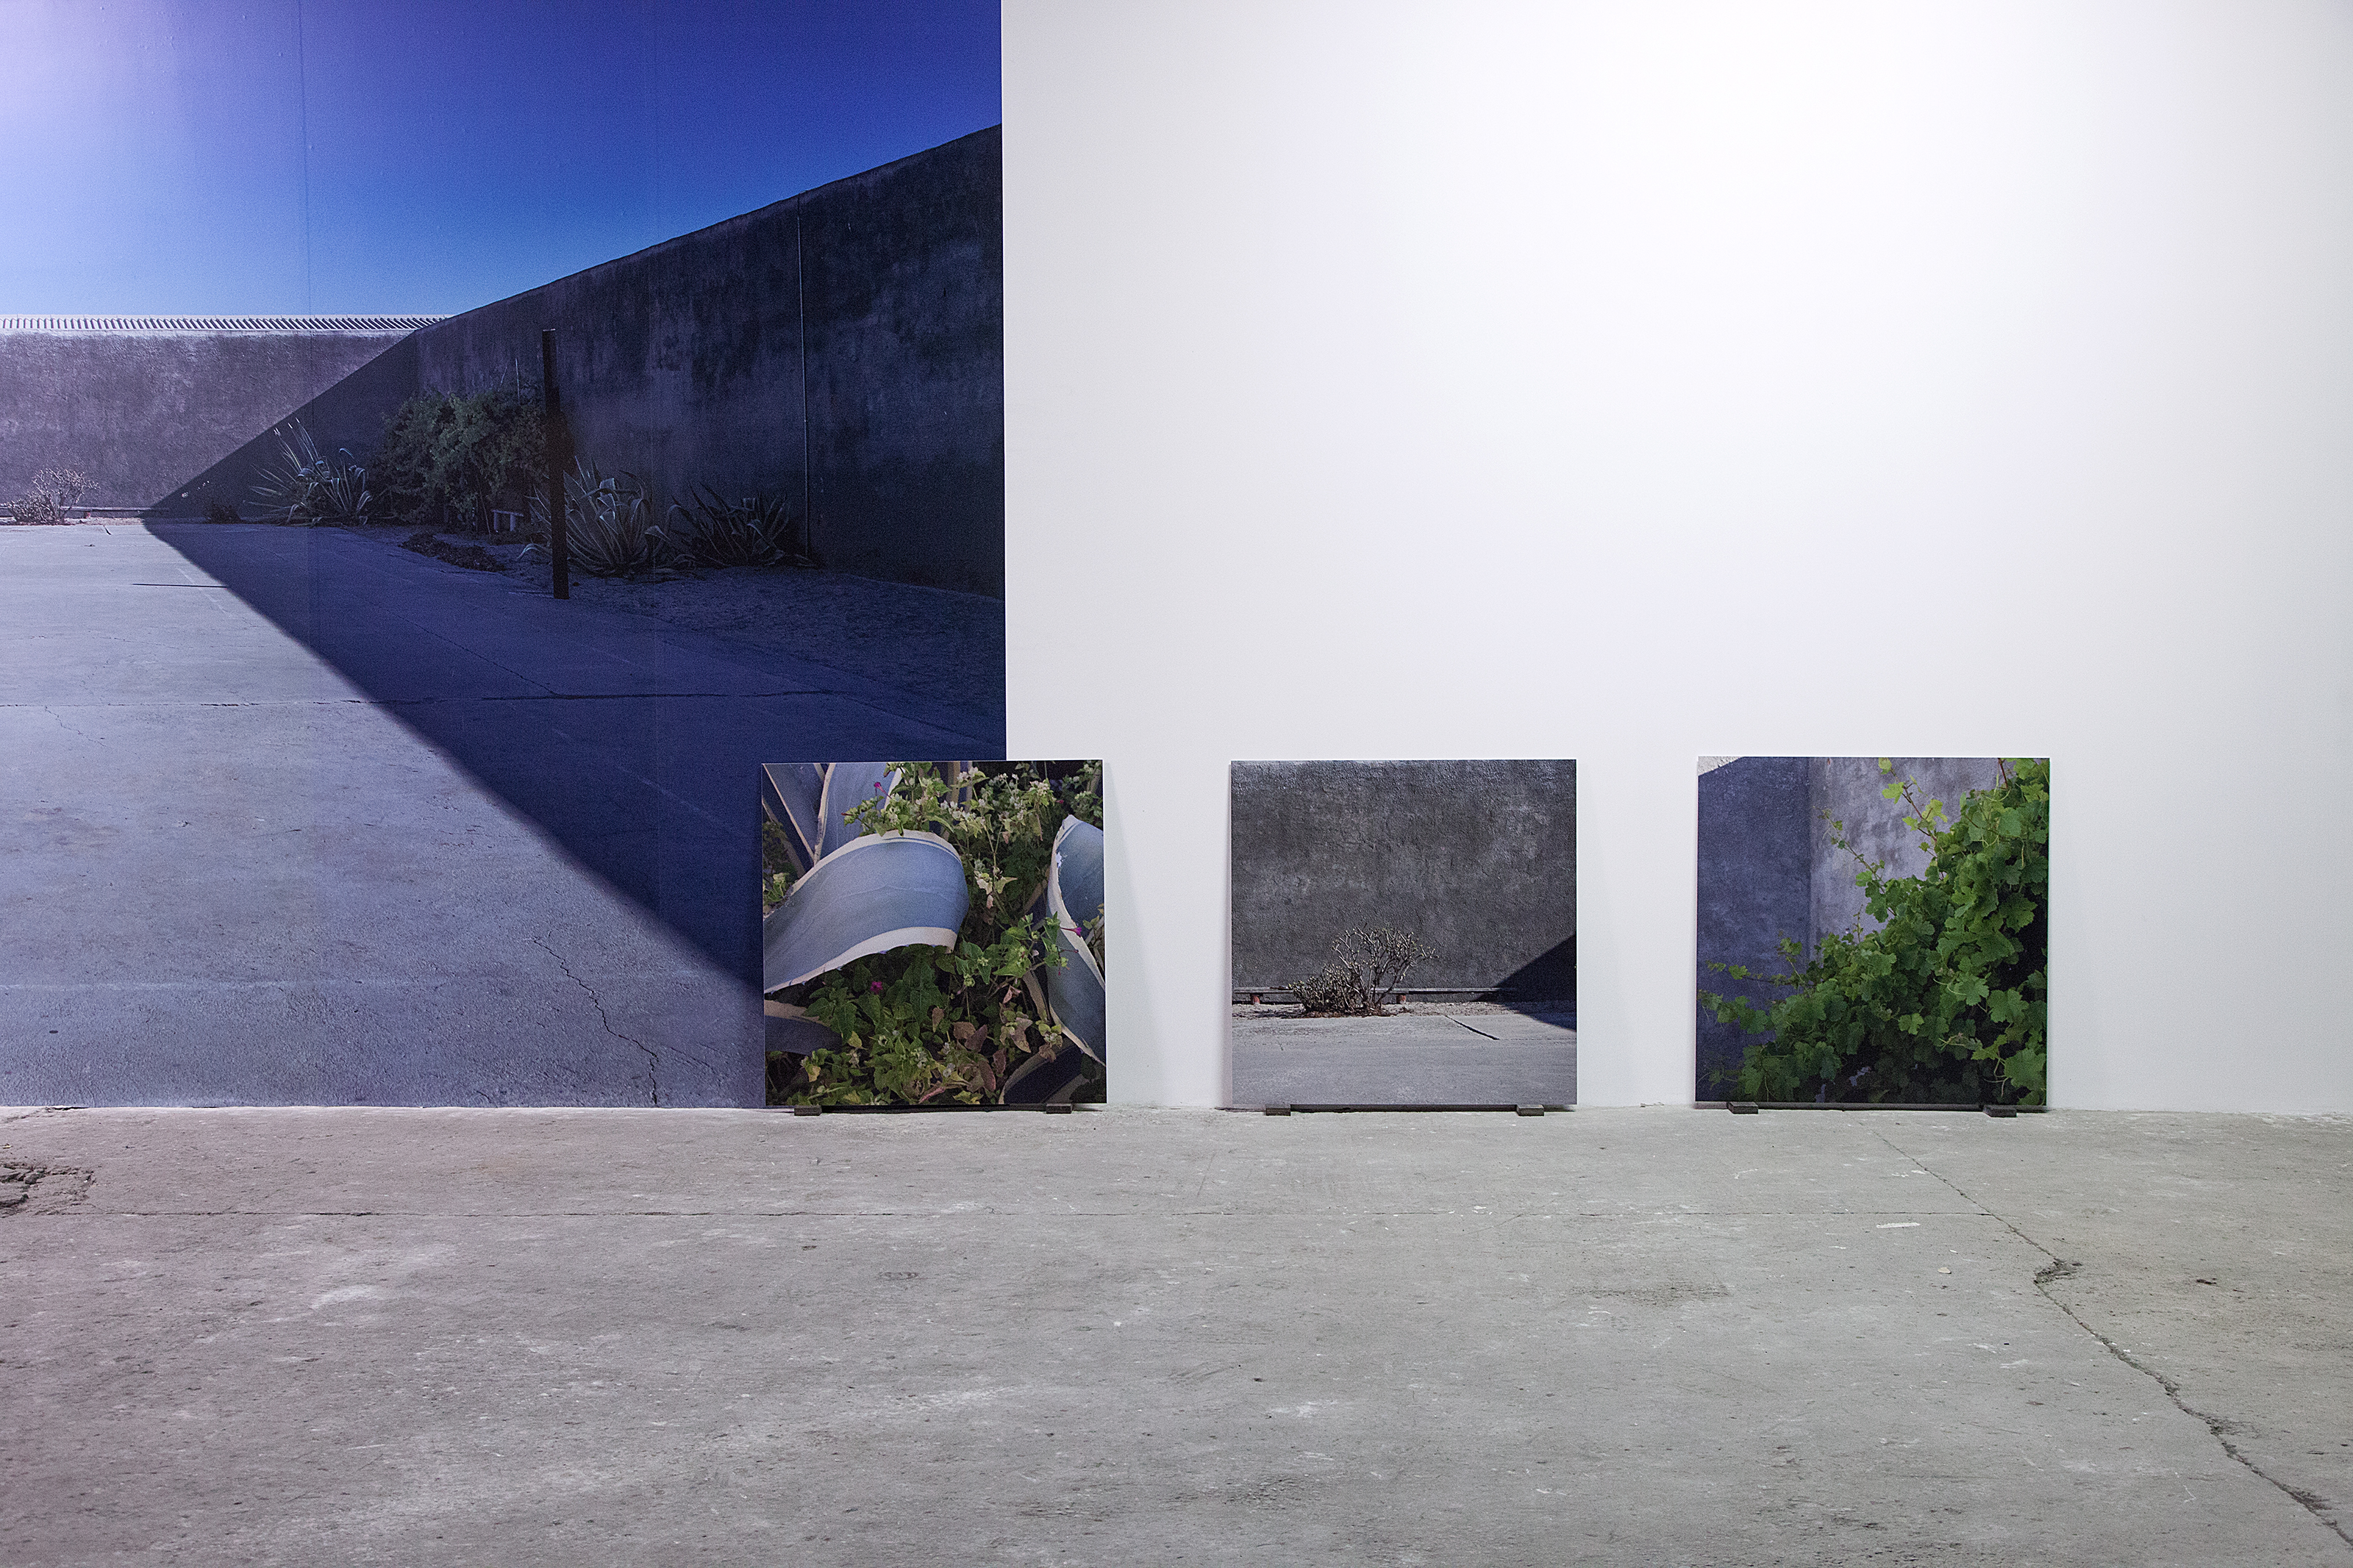 Uriel Orlow, Grey, Green, Gold, 2015 - 2016, wallpaper, concrete plinth with loupe and seed, slide projection, photographs on aluminum, framed photograph, dimensions variable, photo: Miriam O'Connor, courtesy the artist